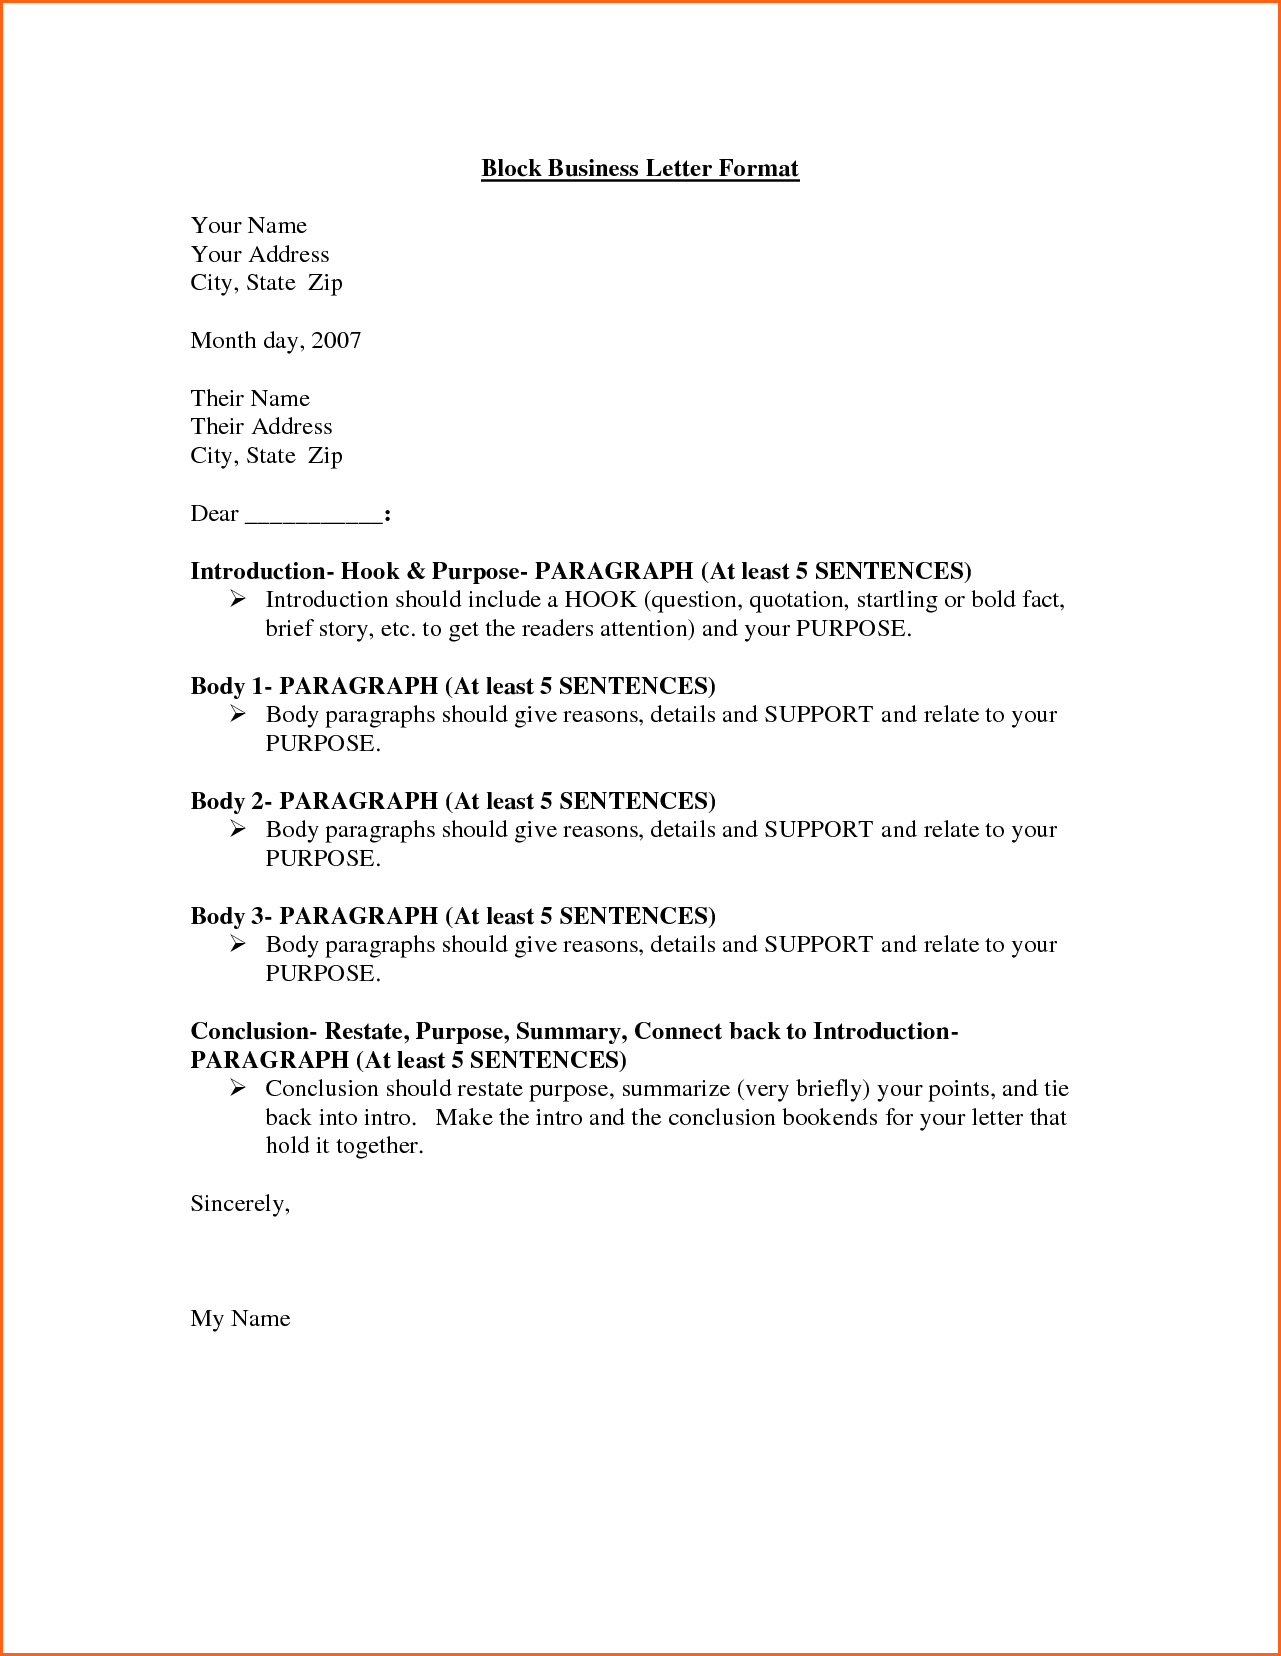 Business Letters Block Format Contract Template Letter New